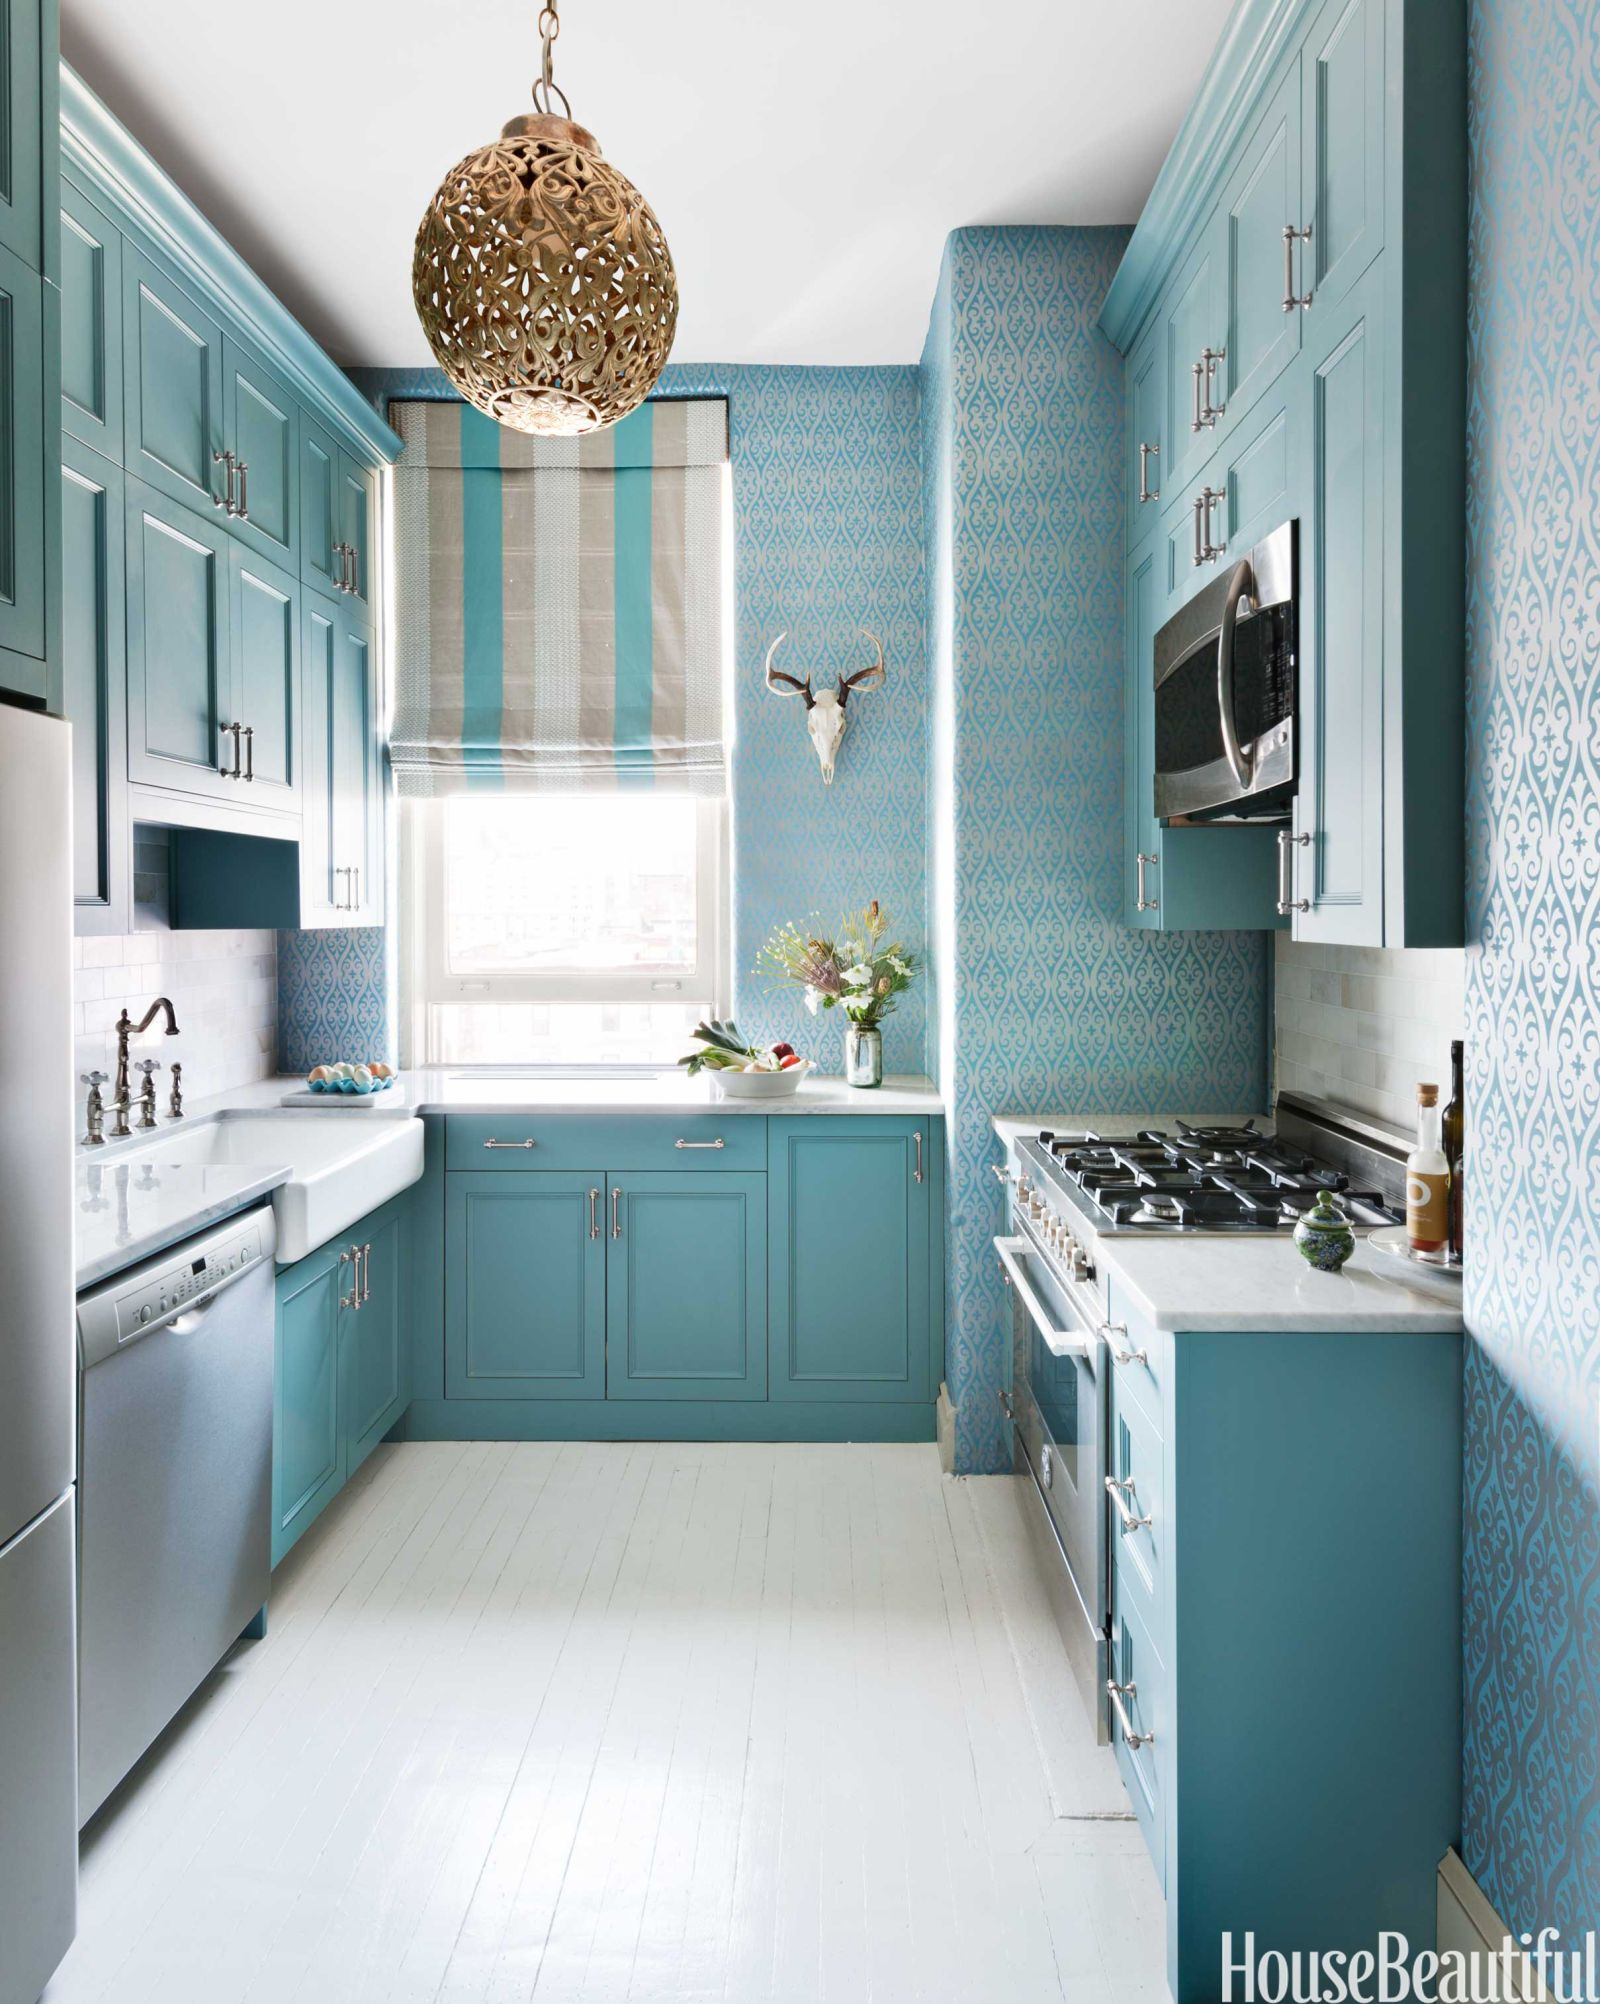 30 Small Kitchen Ideas That Maximize Style And Efficiency Beauteous New York Kitchen Design Style Inspiration Design